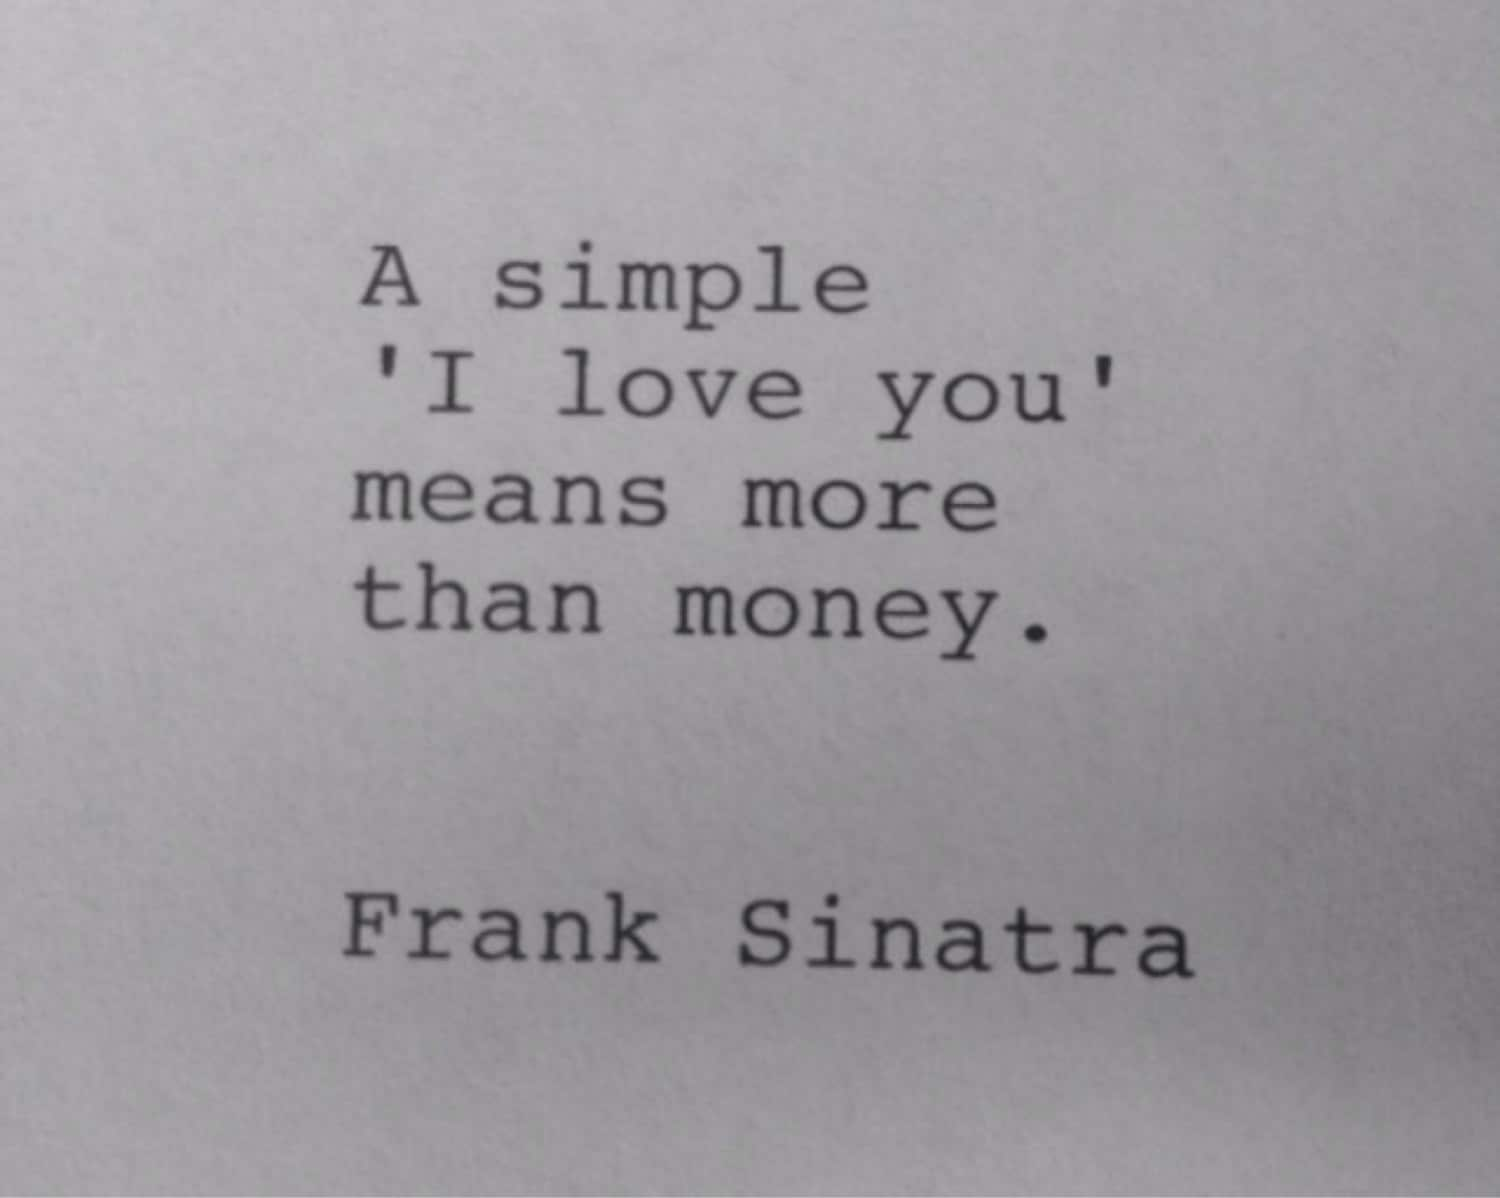 Simple I Love You Quotes Frank Sinatra Hand Typed Typewriter Quote A Simple I Love